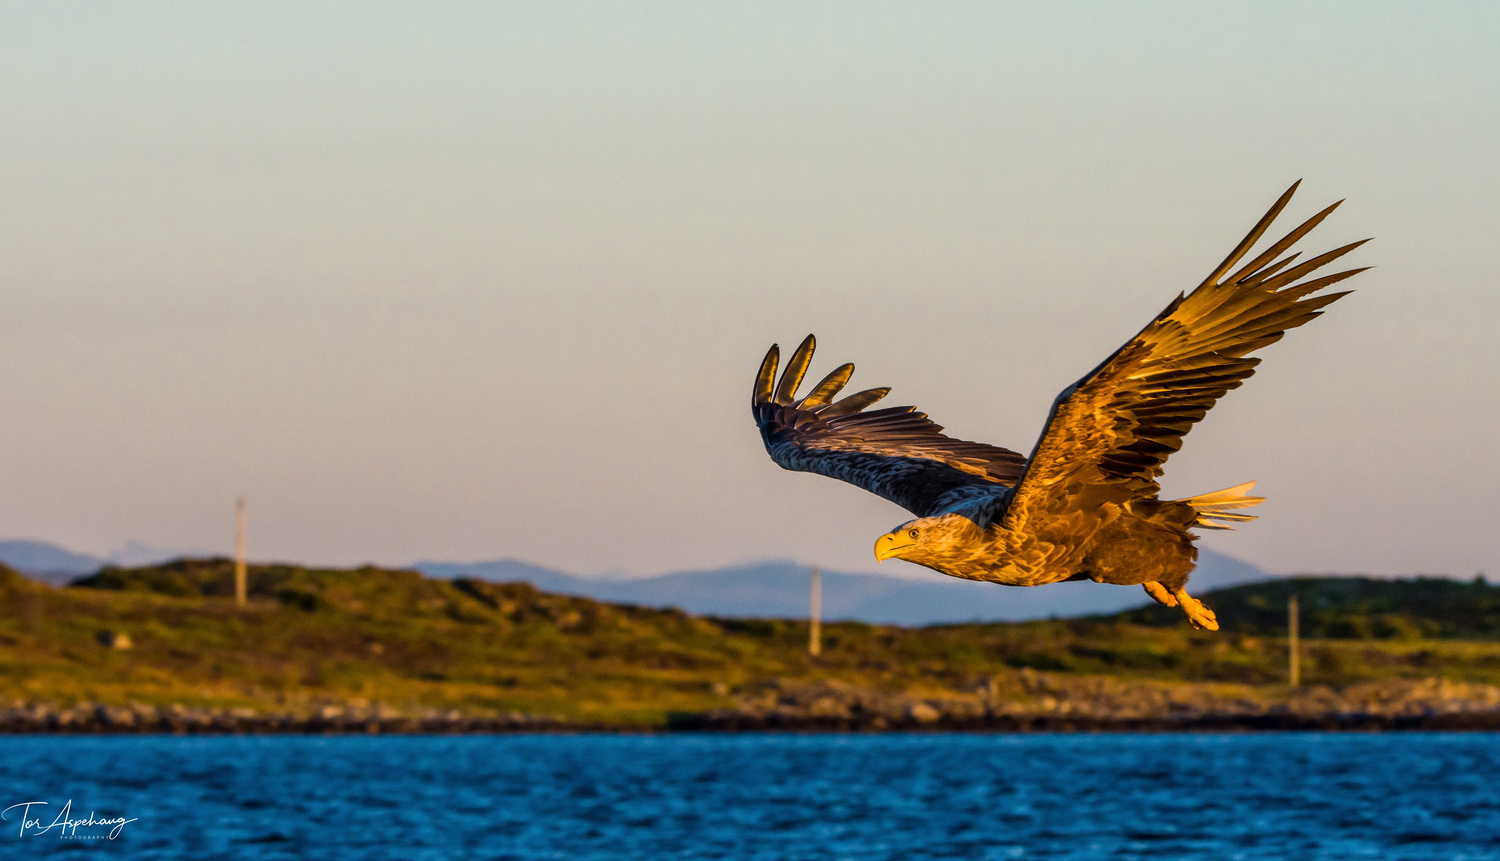 White Tailed Eagle 5 by Tor Aspehaug